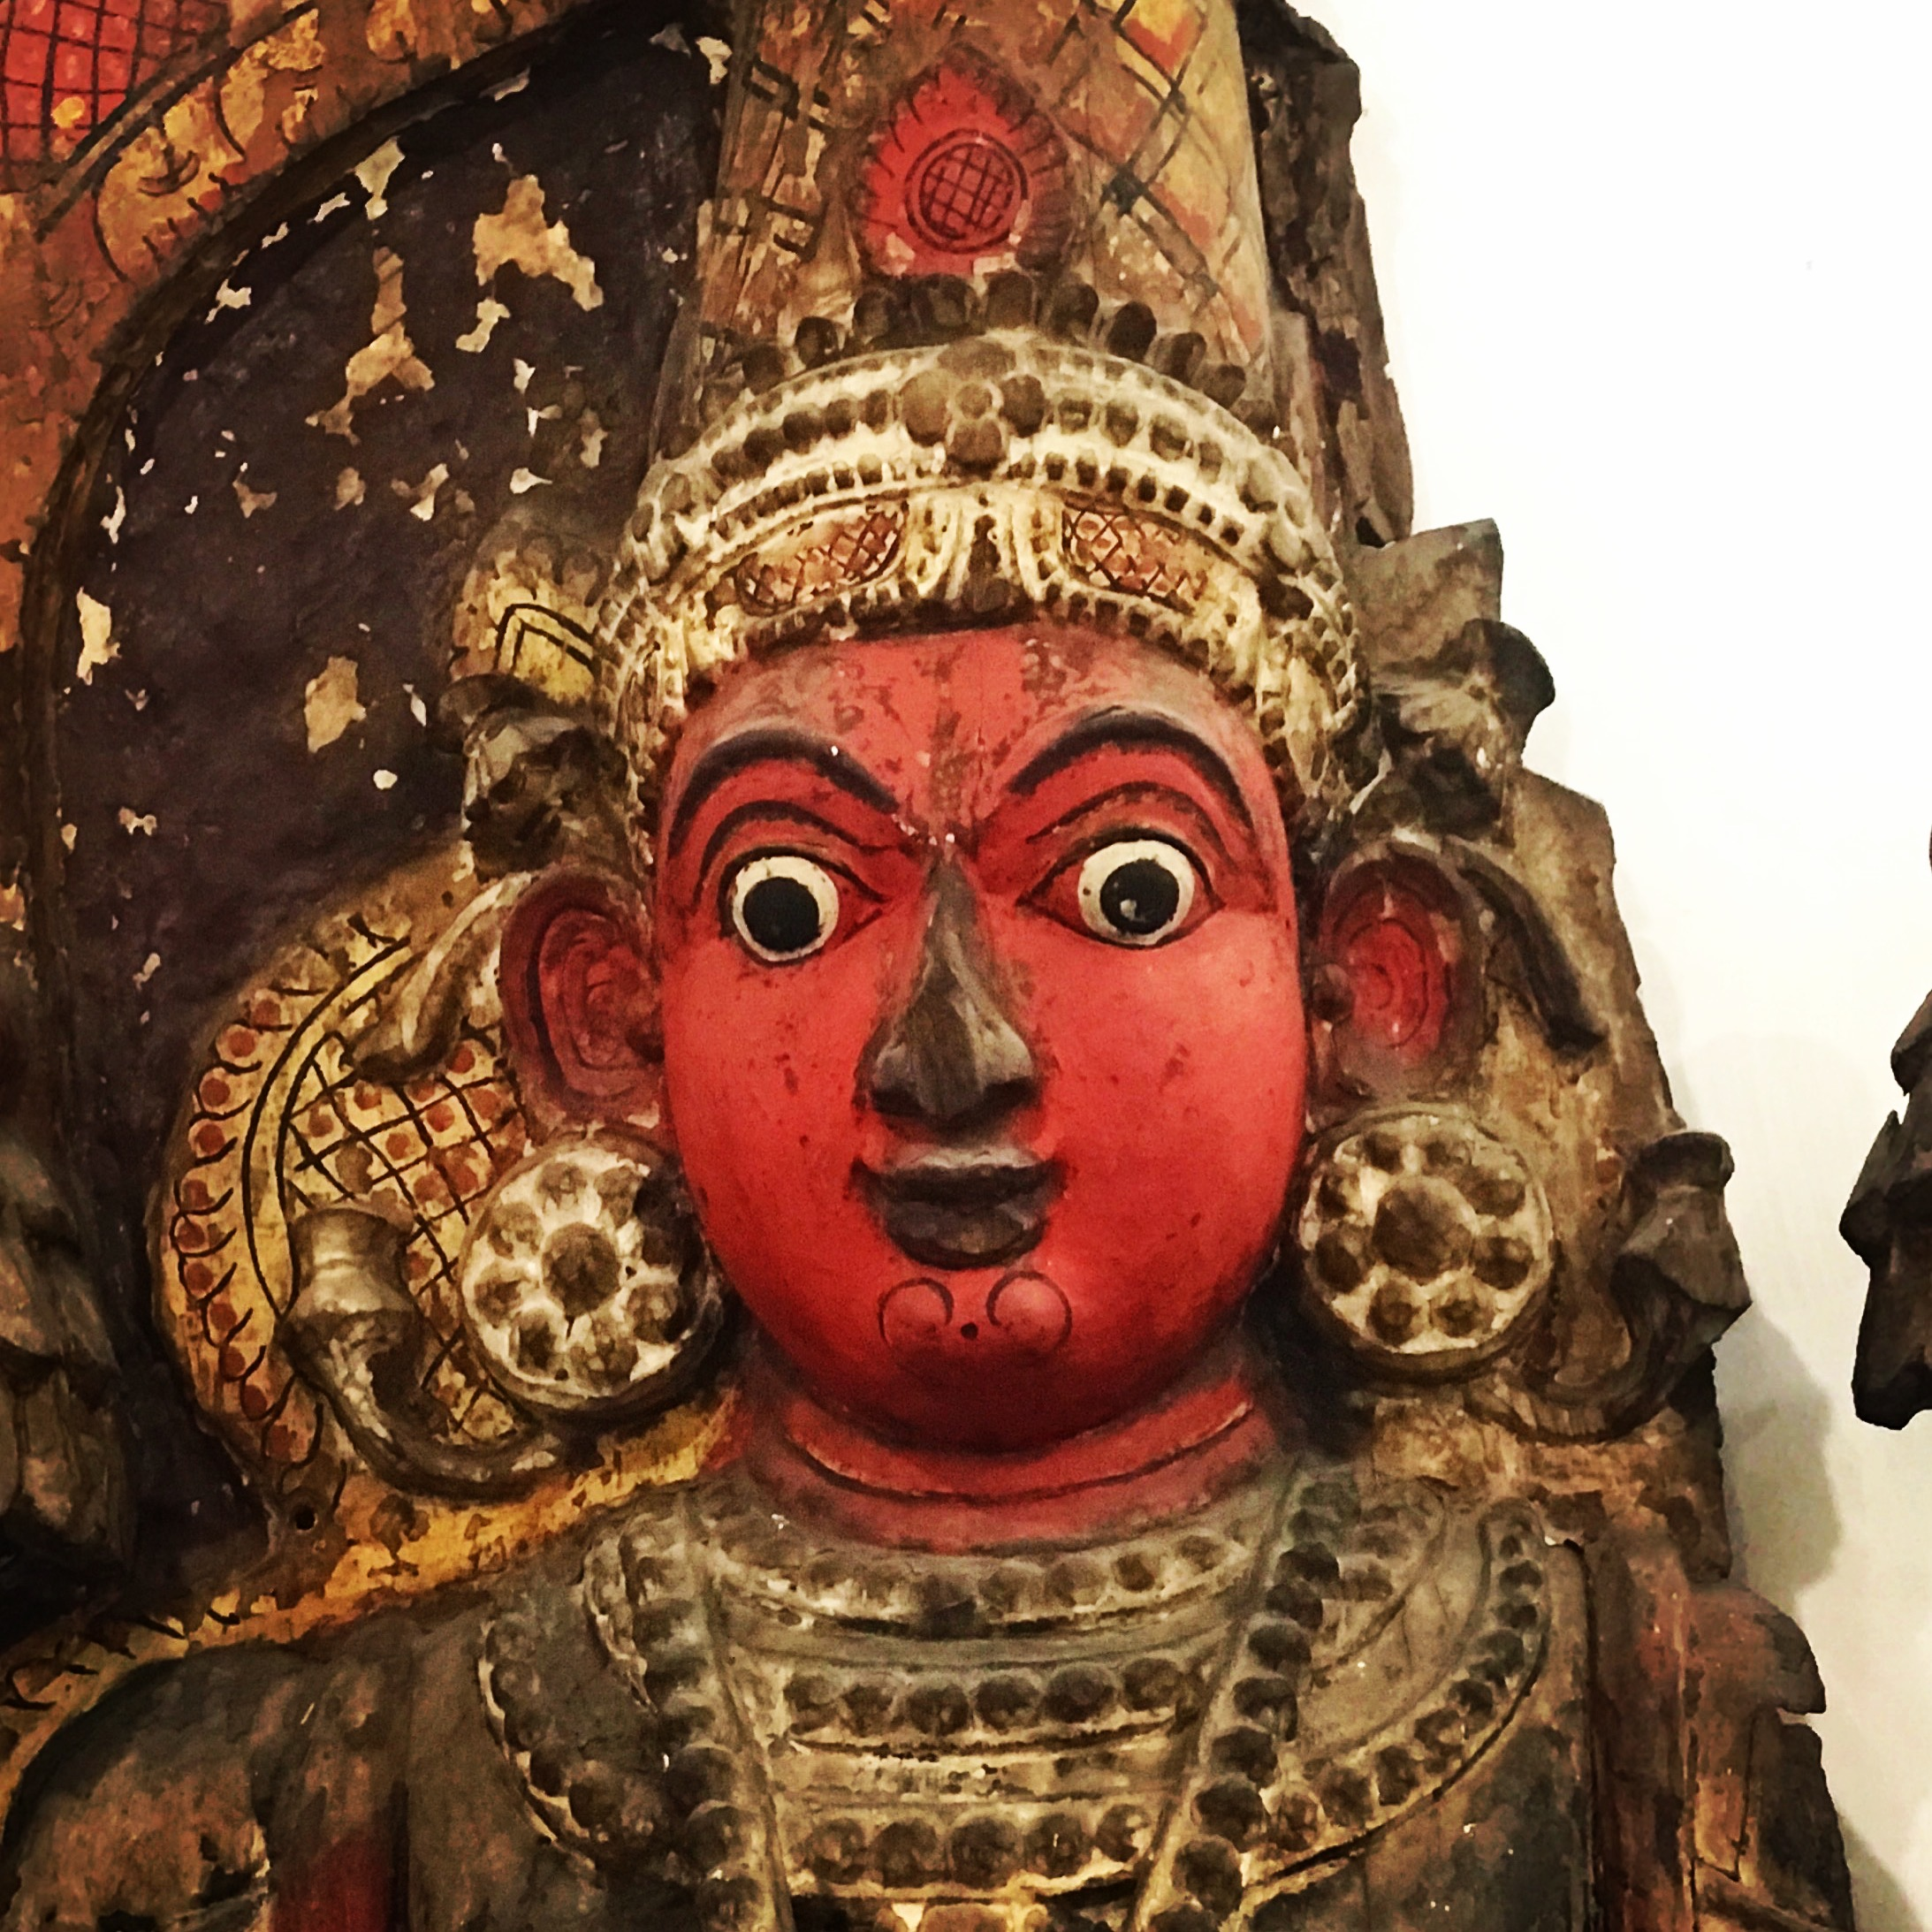 The National museum gave us a glimpse into the last 5000 years of Indian history.